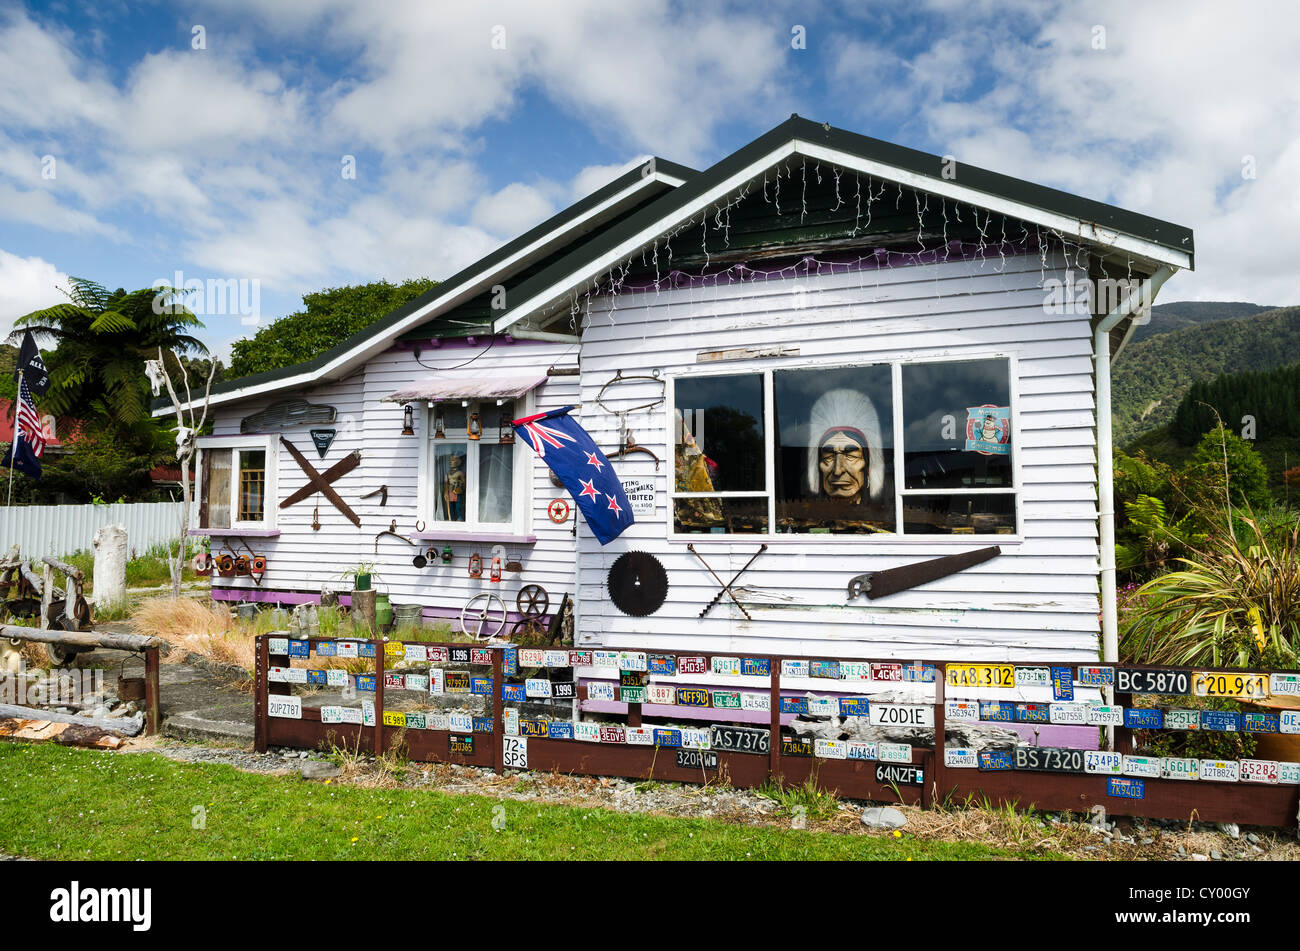 Tourist attraction, quirky house decorated with Wild West paraphernalia, license plates, cow and sheep skulls, Ross - Stock Image